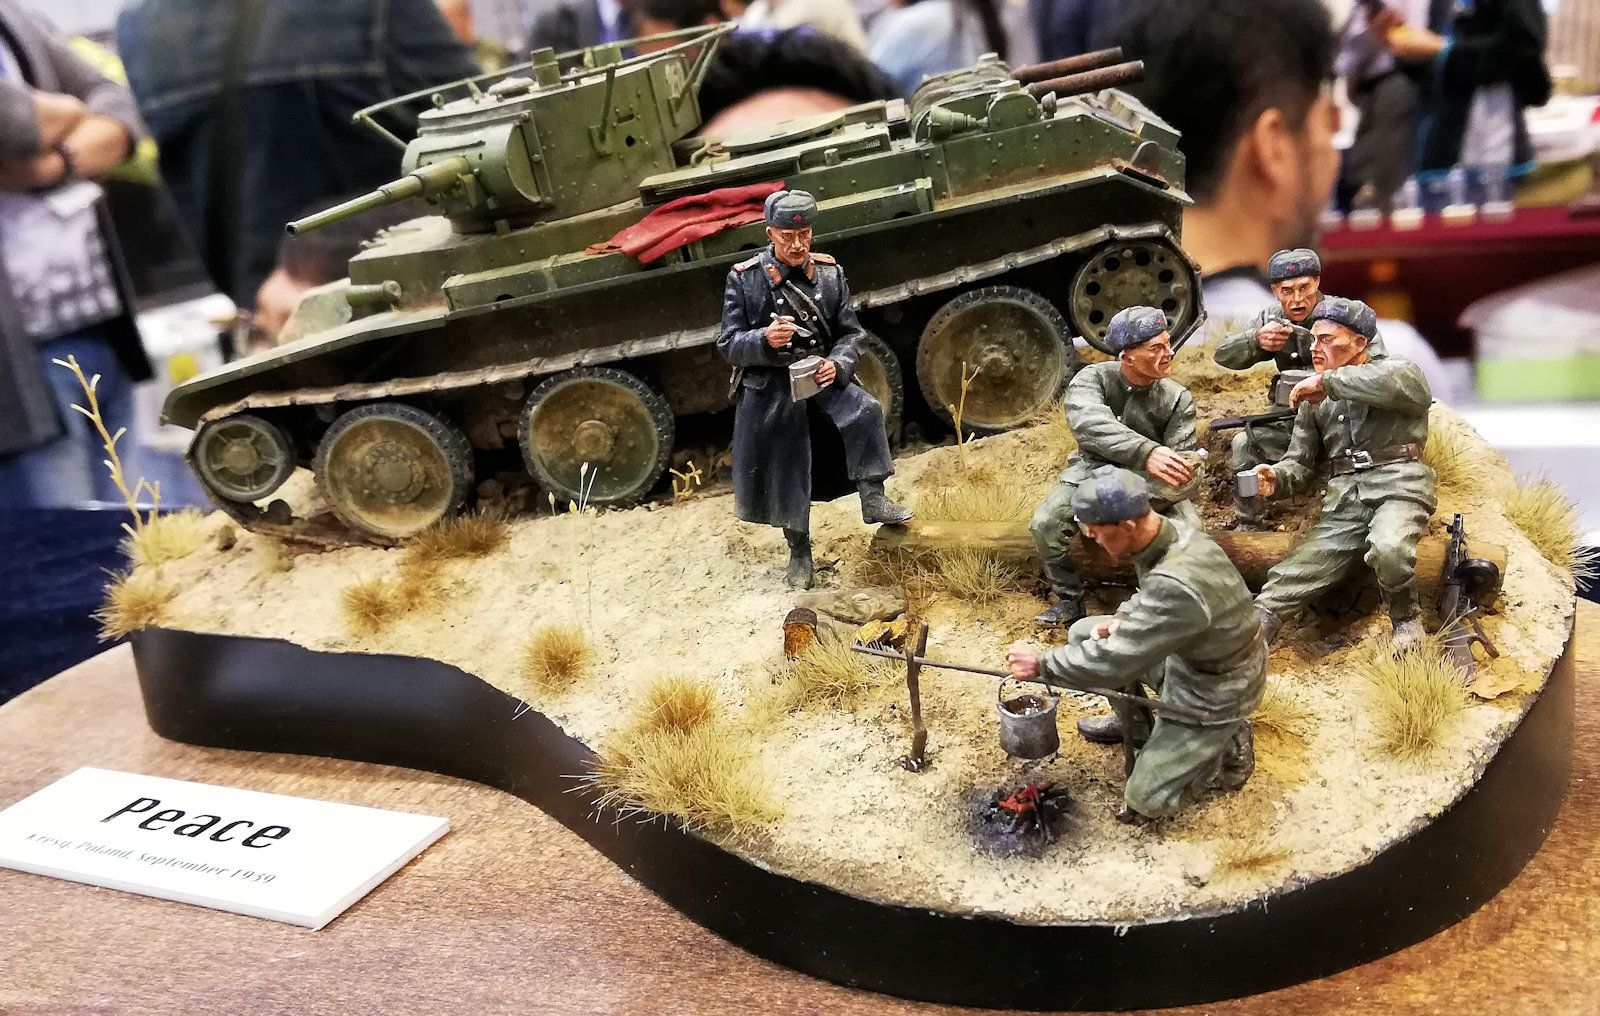 Pin on Vietnam war models and dioramas 1/35 scale